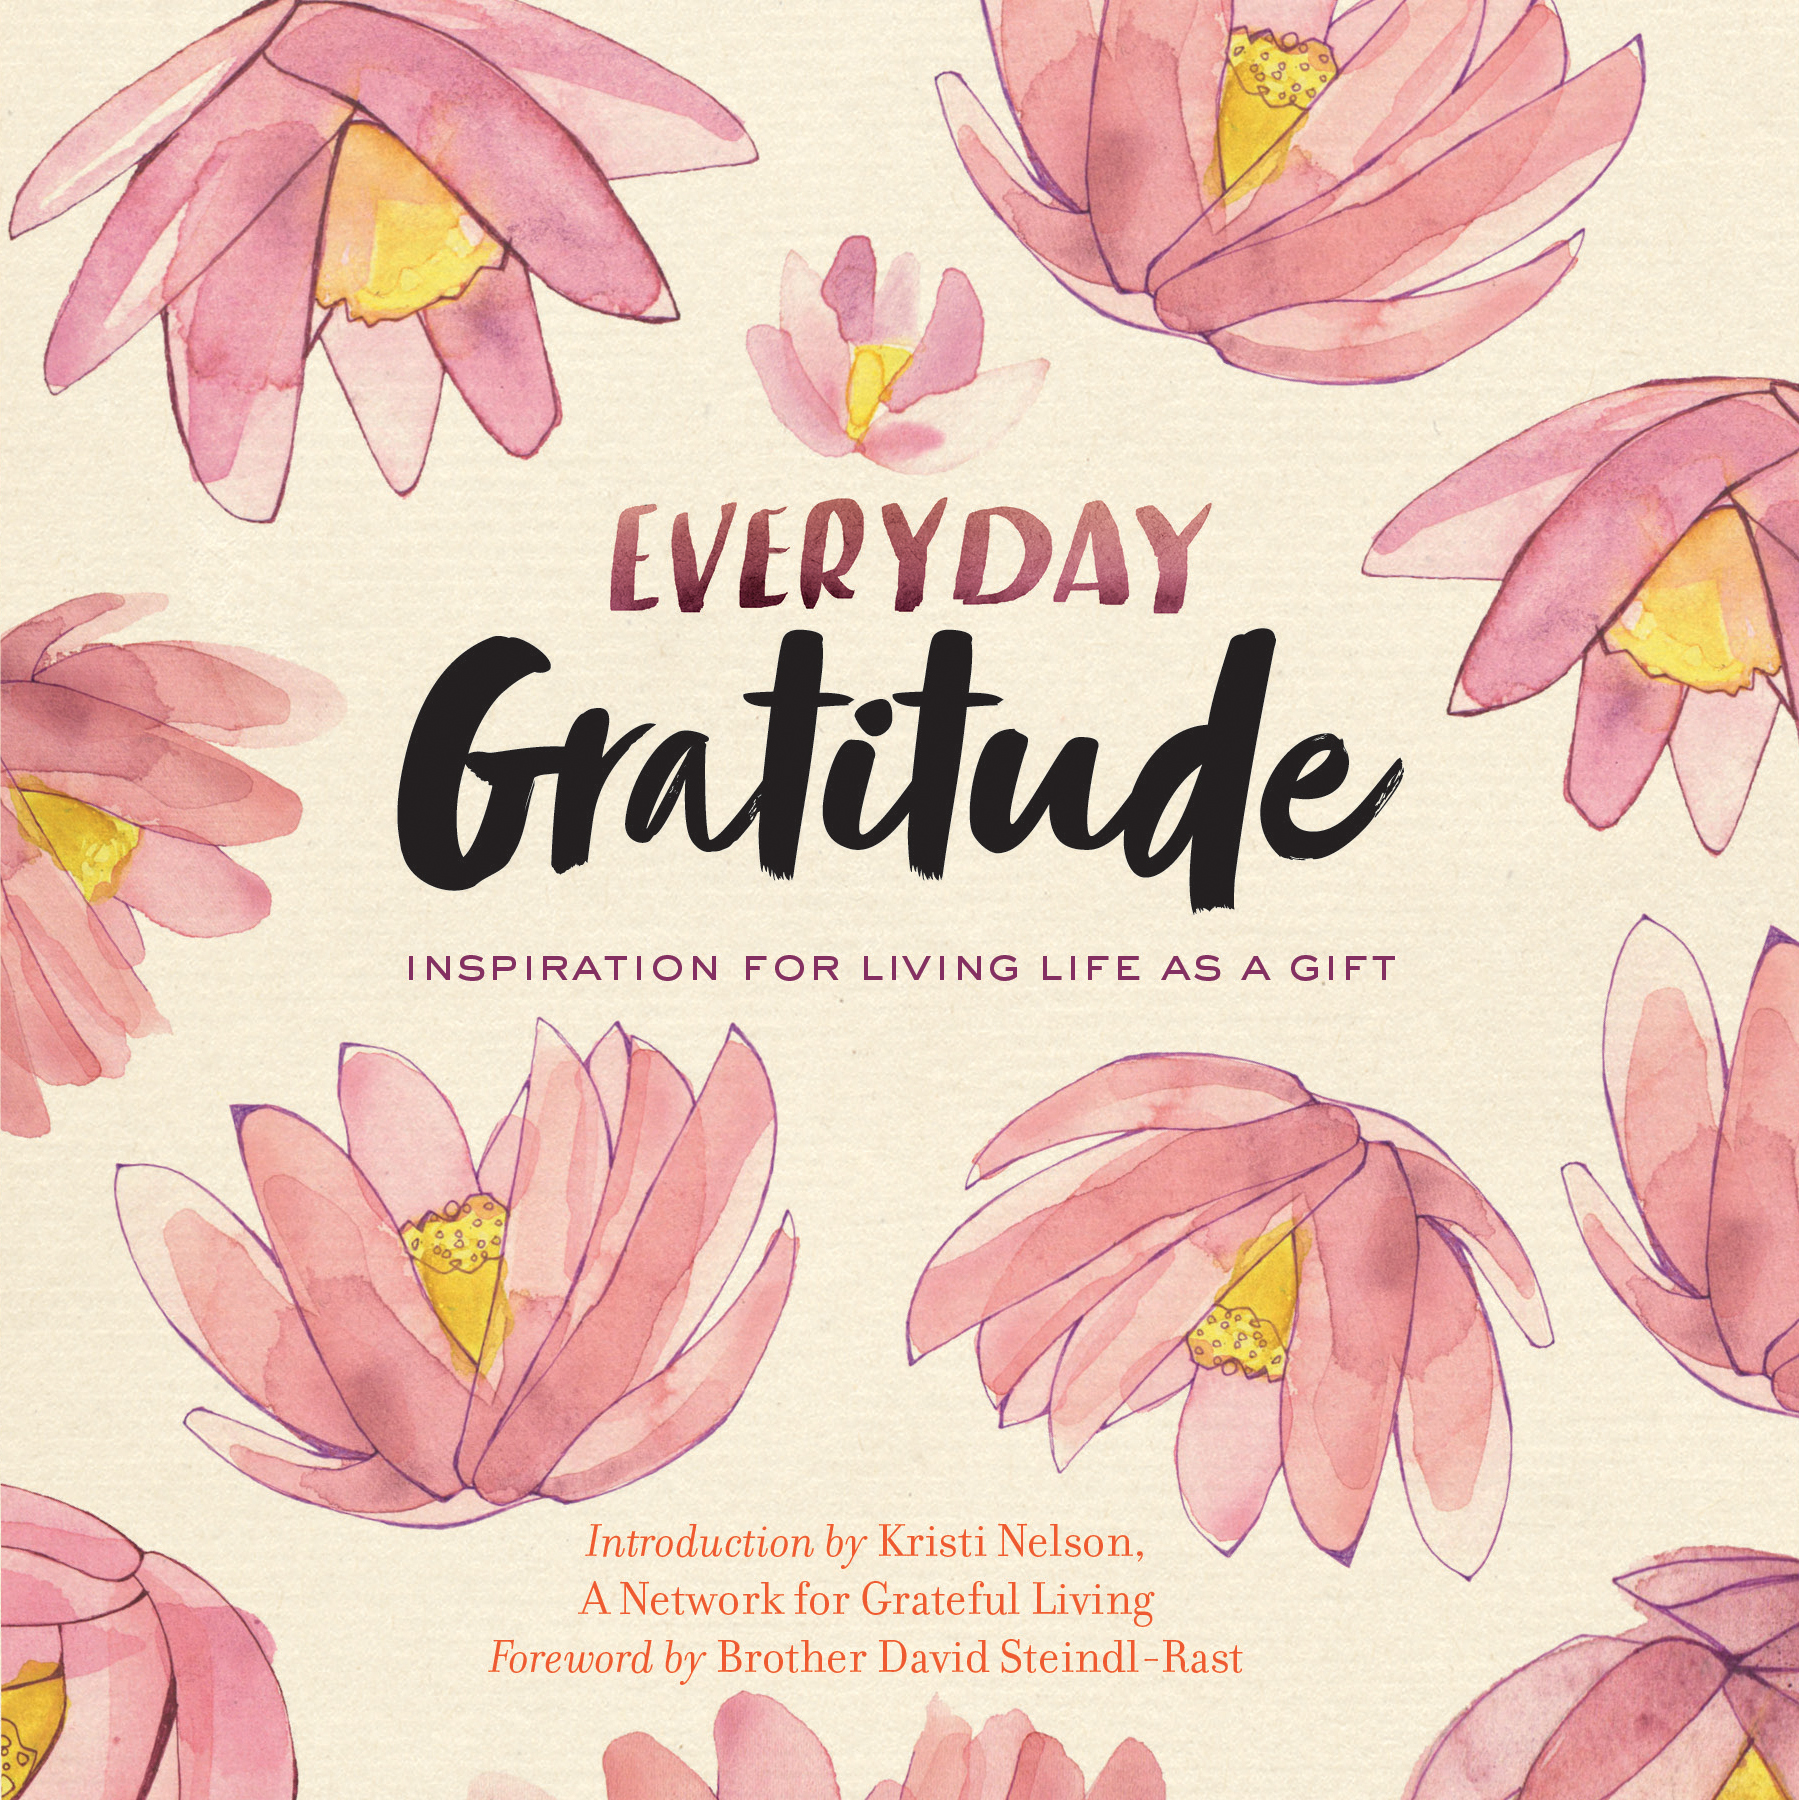 Everyday Gratitude Inspiration for Living Life as a Gift - A Network for Grateful Living